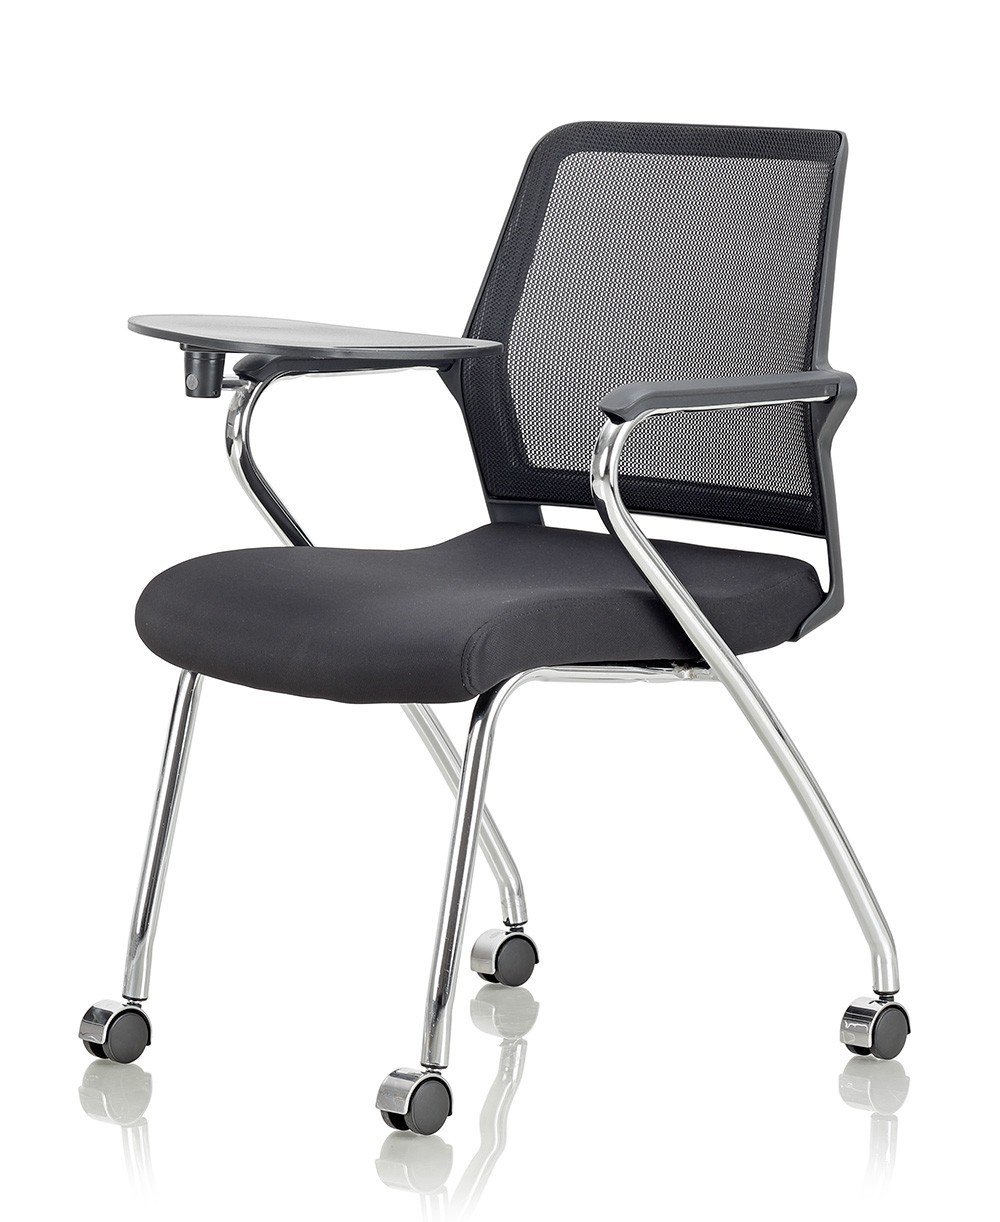 Show Details For Forum Office Chairs. Photo Not Available.